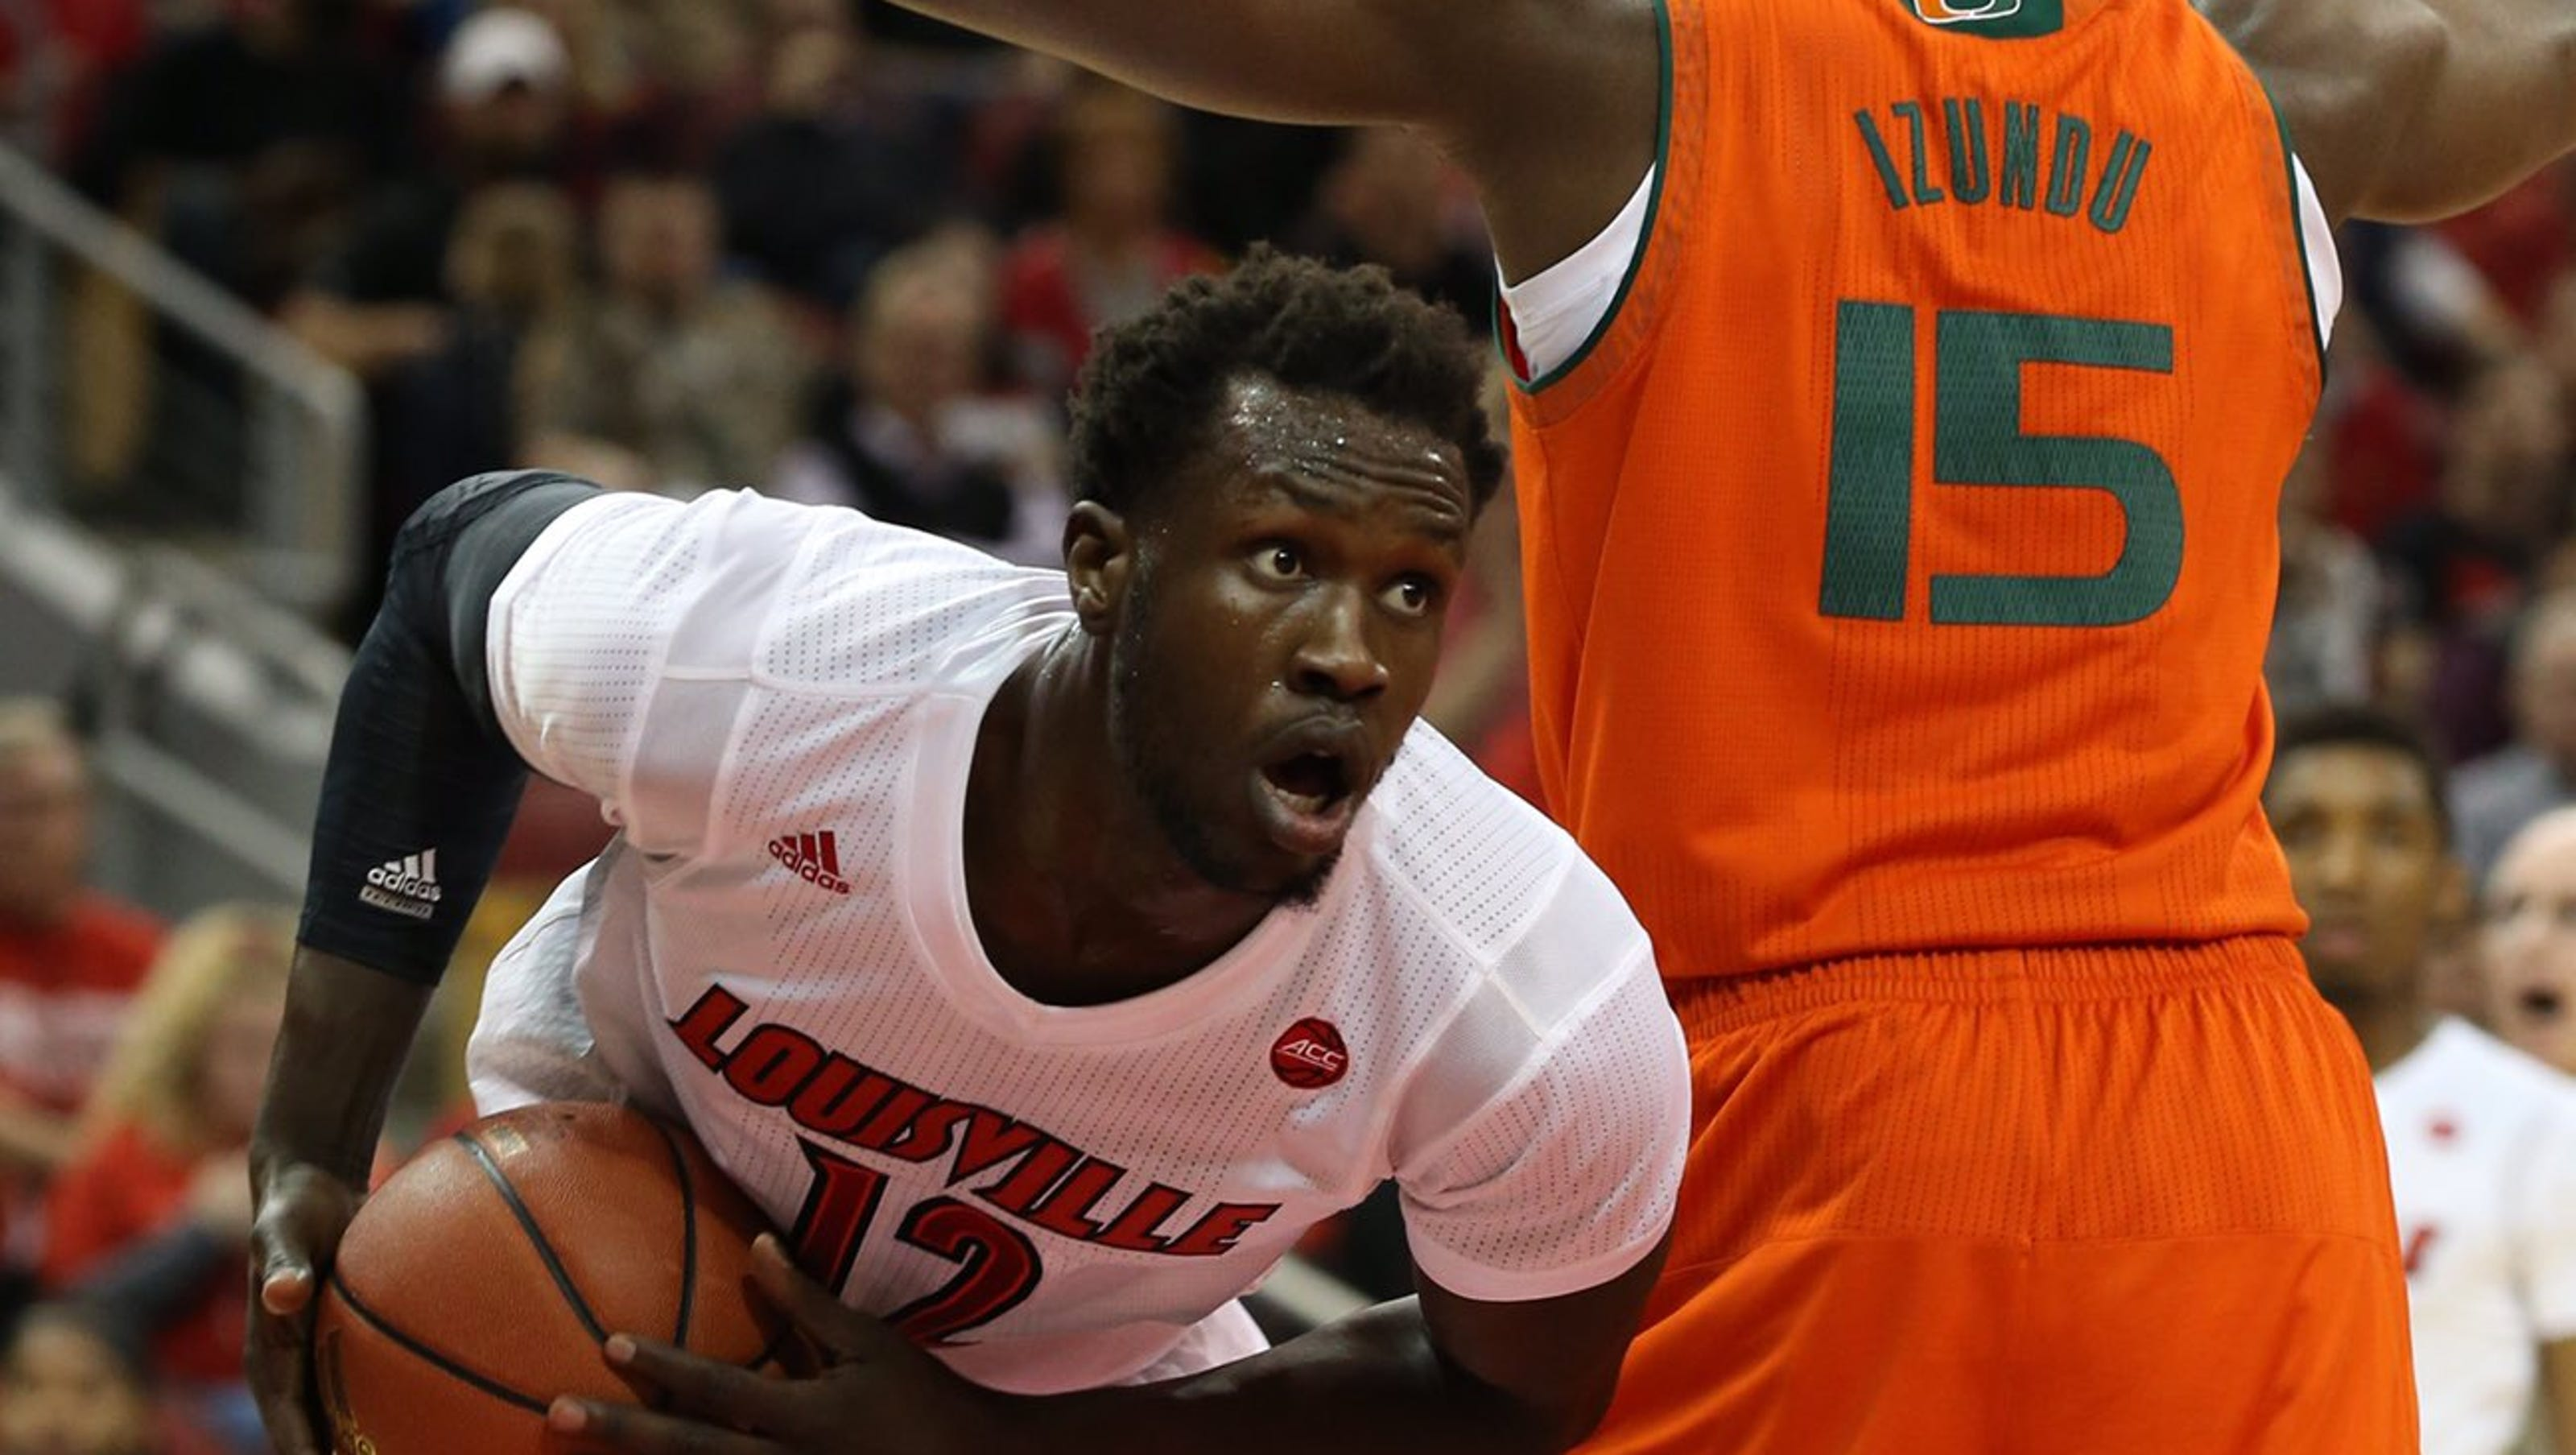 More than 17000 showed up at the KFC Yum Center on Thursday to watch the Louisville womens basketball team take down UConn